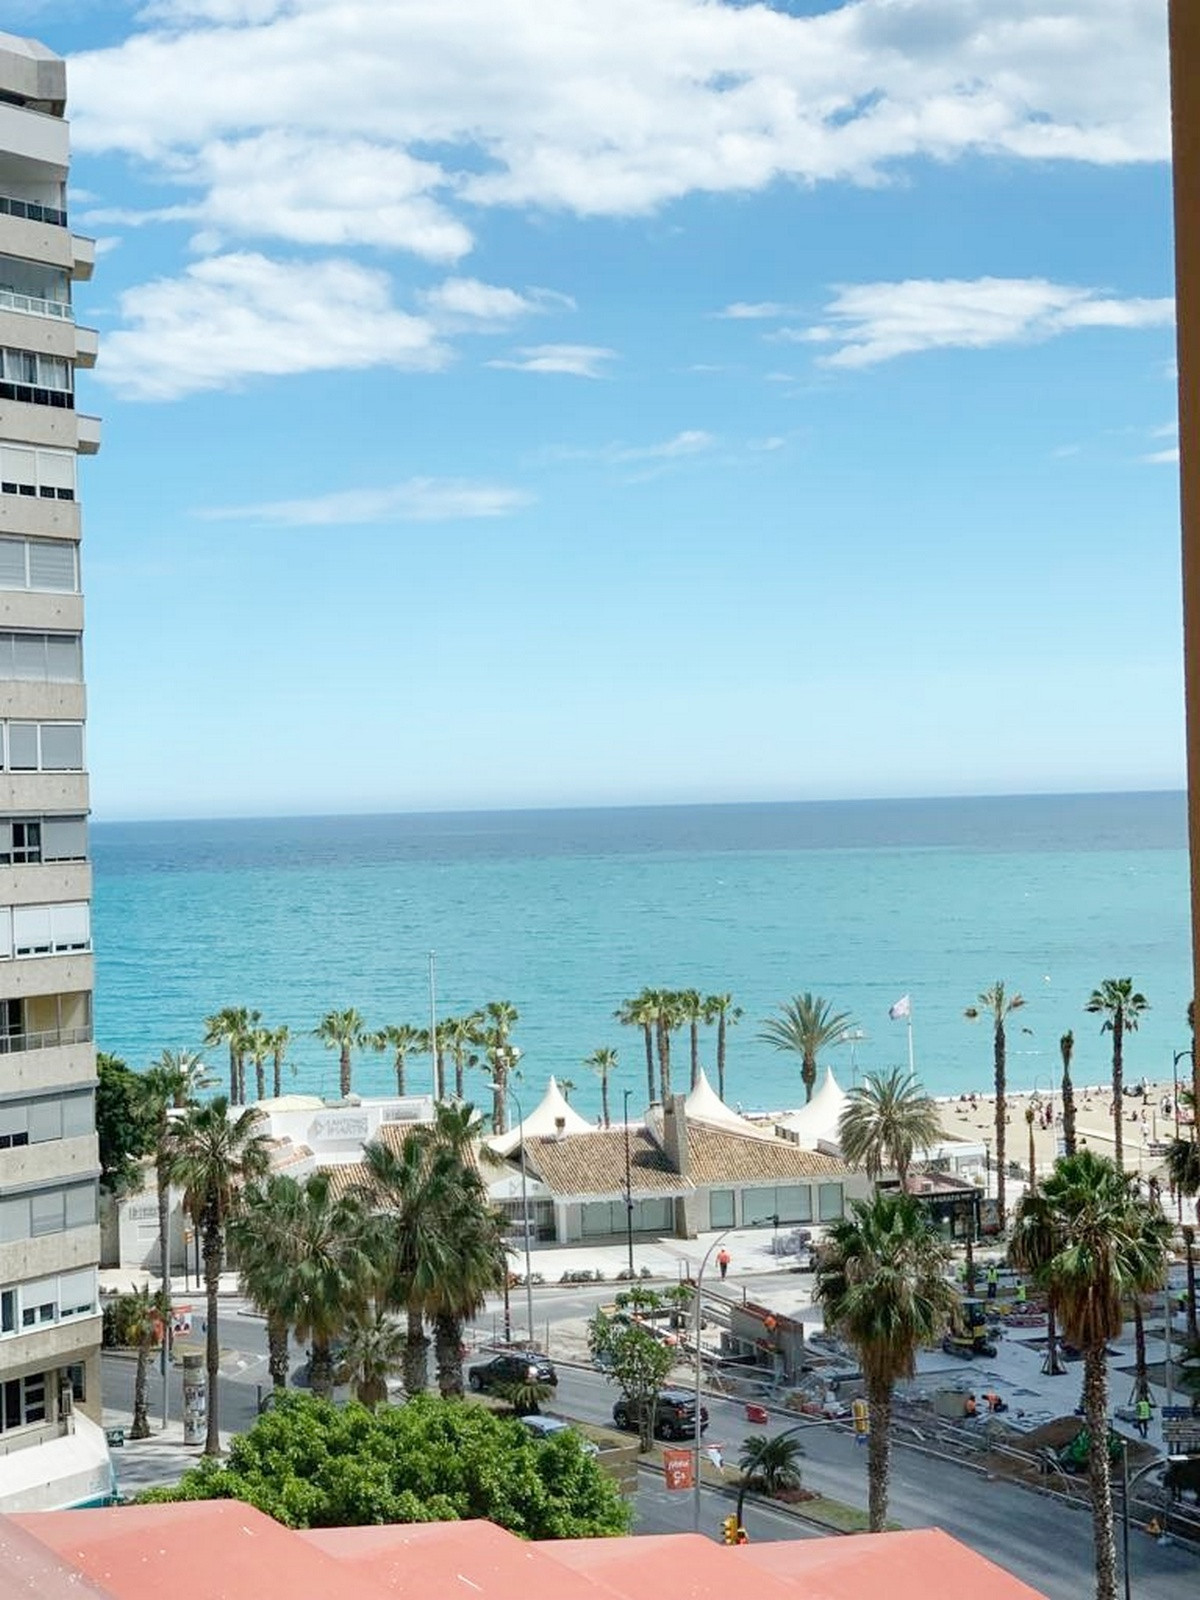 EXCELLENT APARTMENT IN LA MALAGUETA   This beautiful 3 bedroom apartment with south facing sea views, Spain